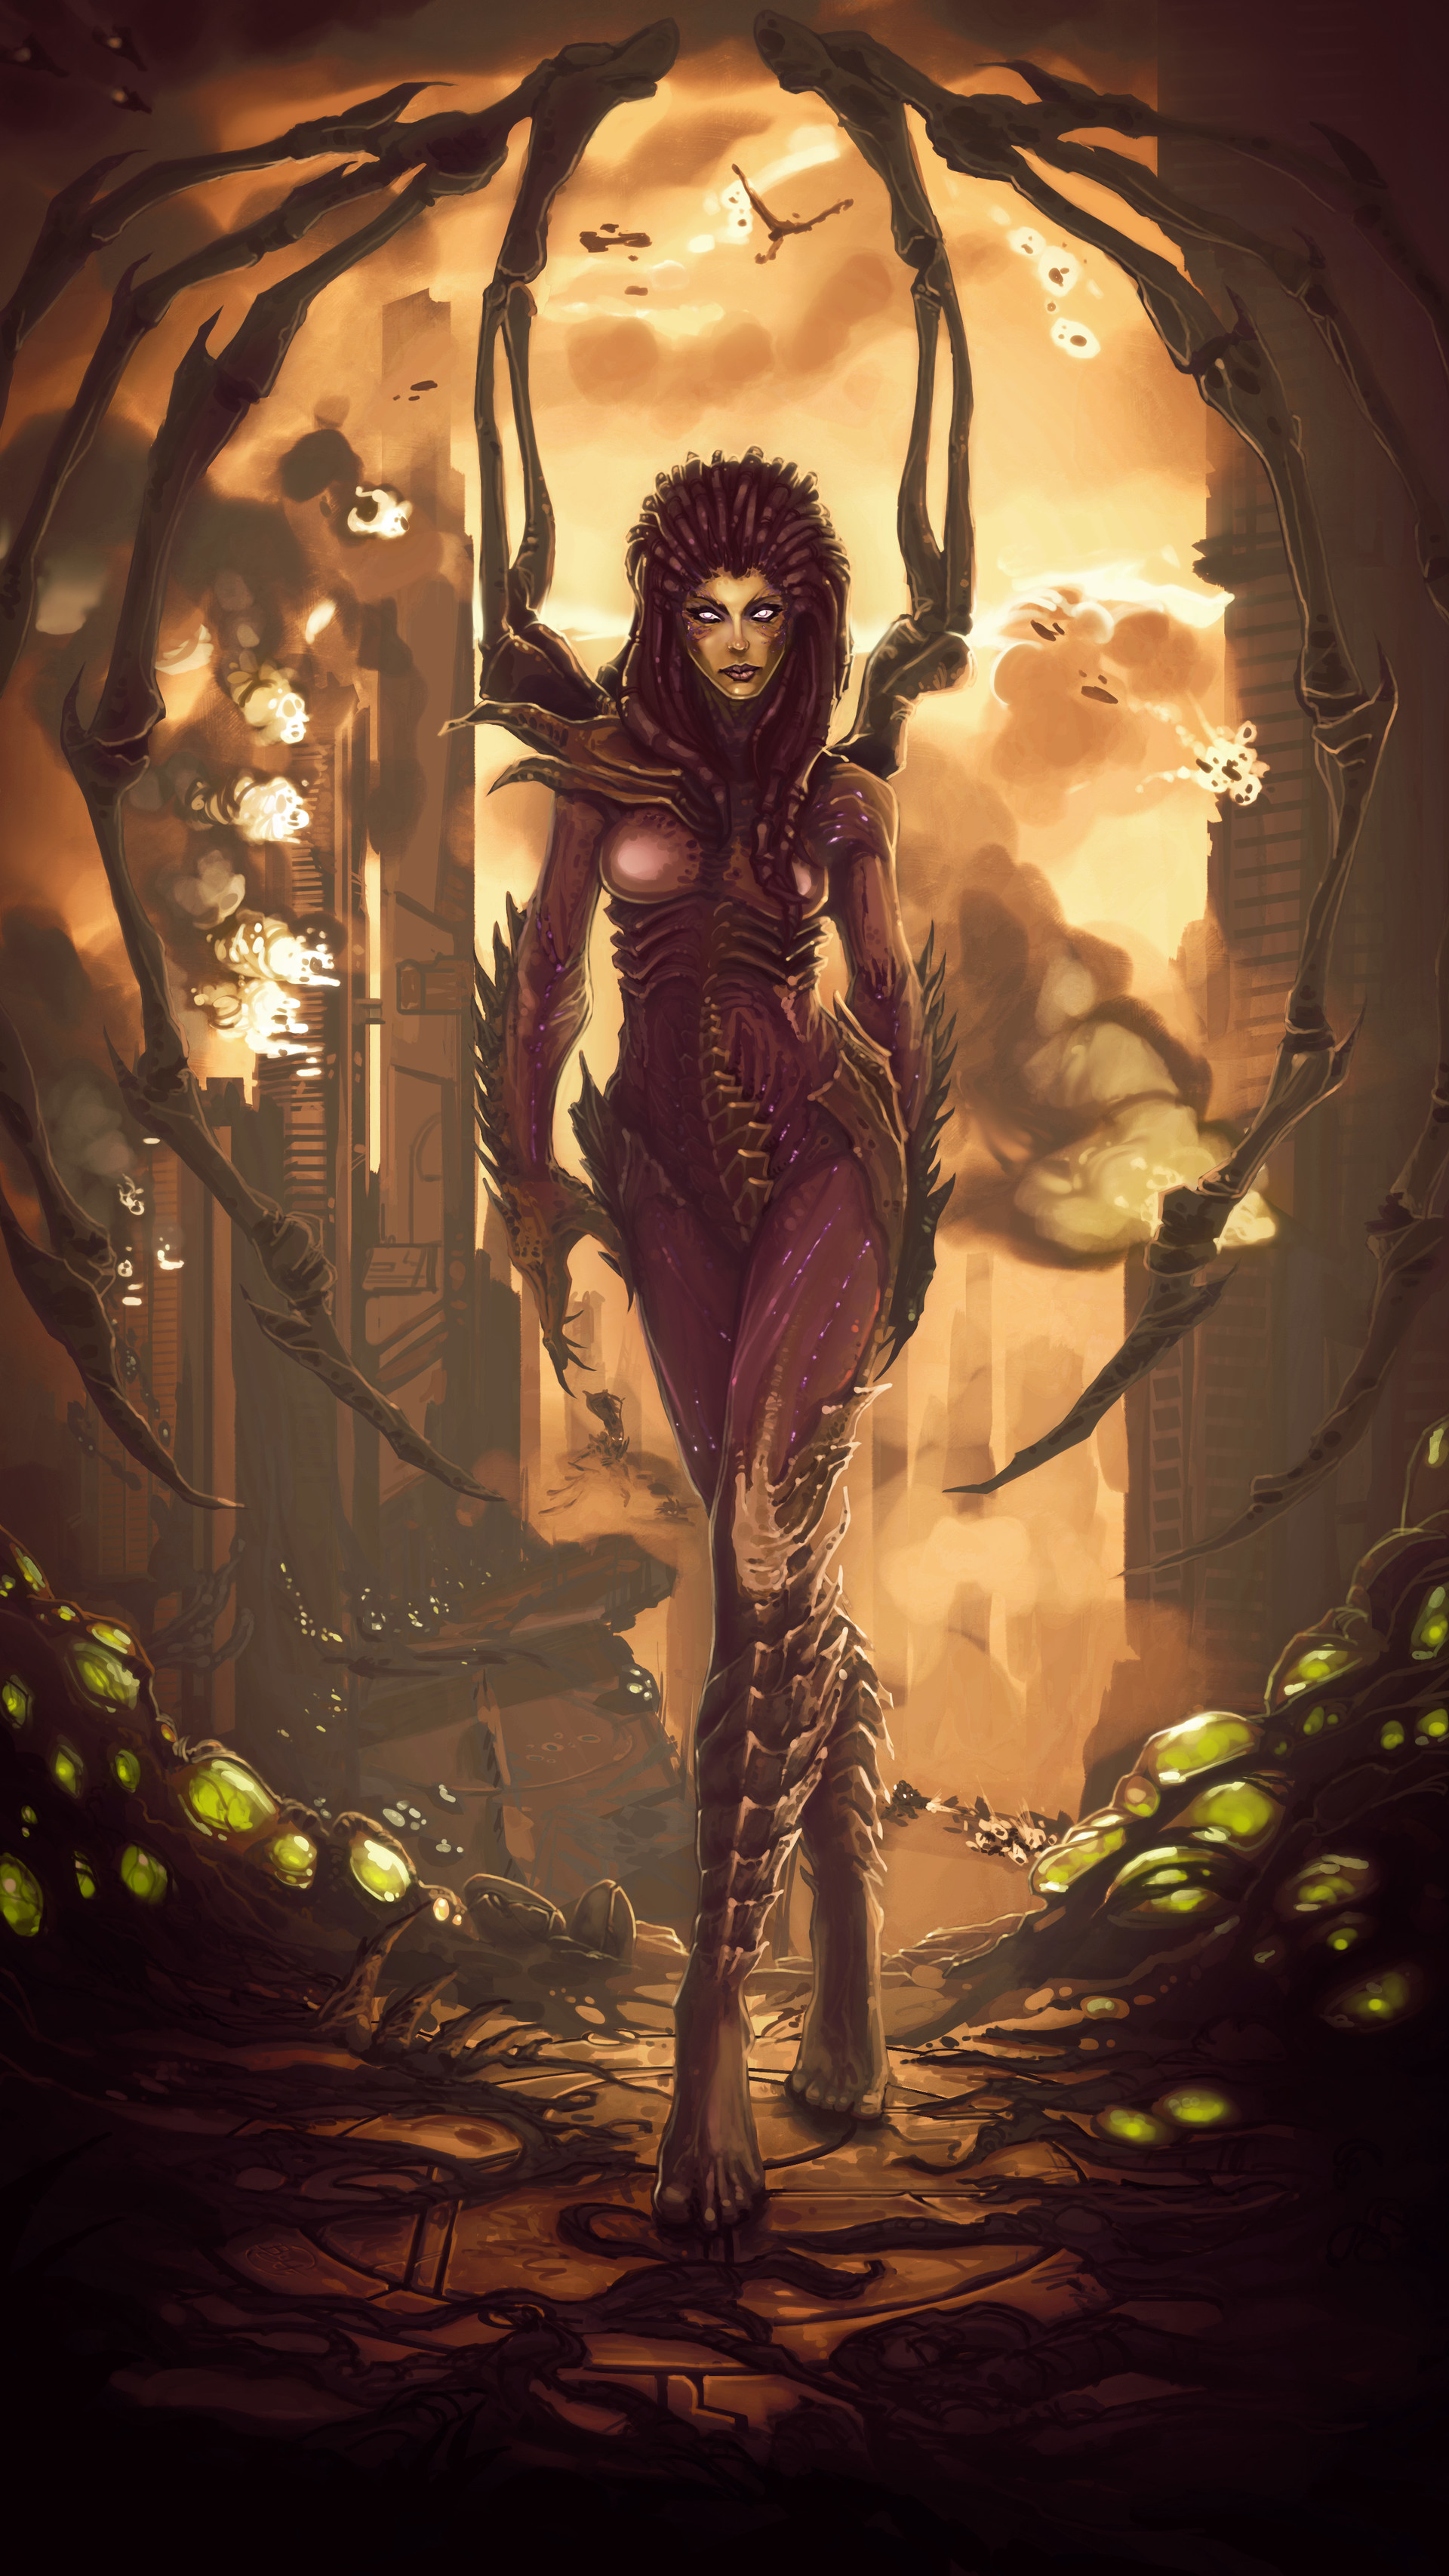 Etienne beschet kerrigan queen of blades